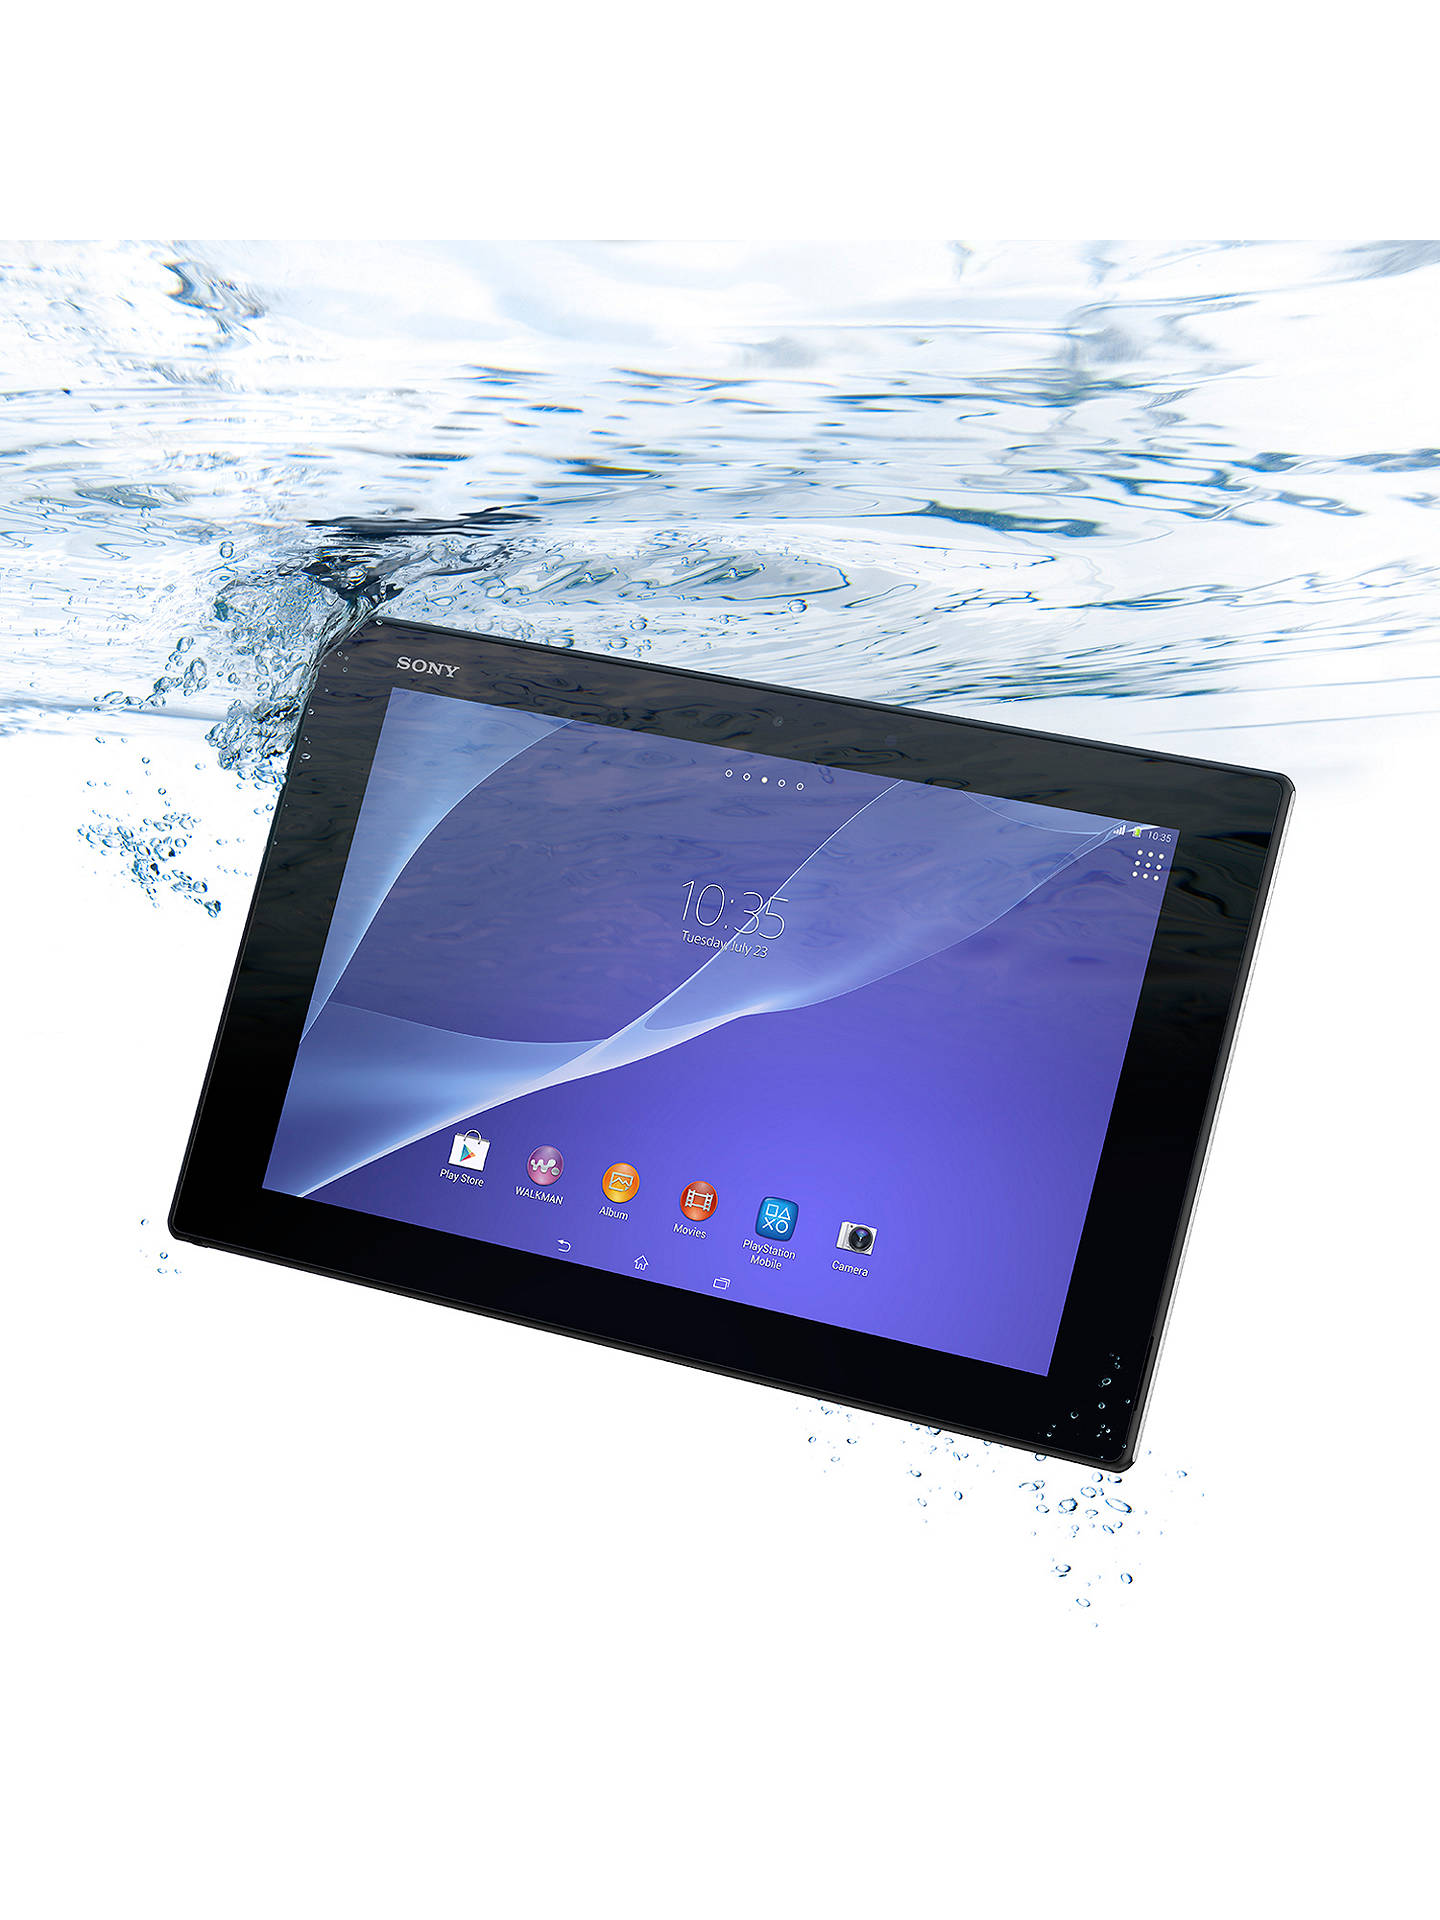 Sony Xperia Z2 Tablet, Snapdragon 801, Android, 10 1